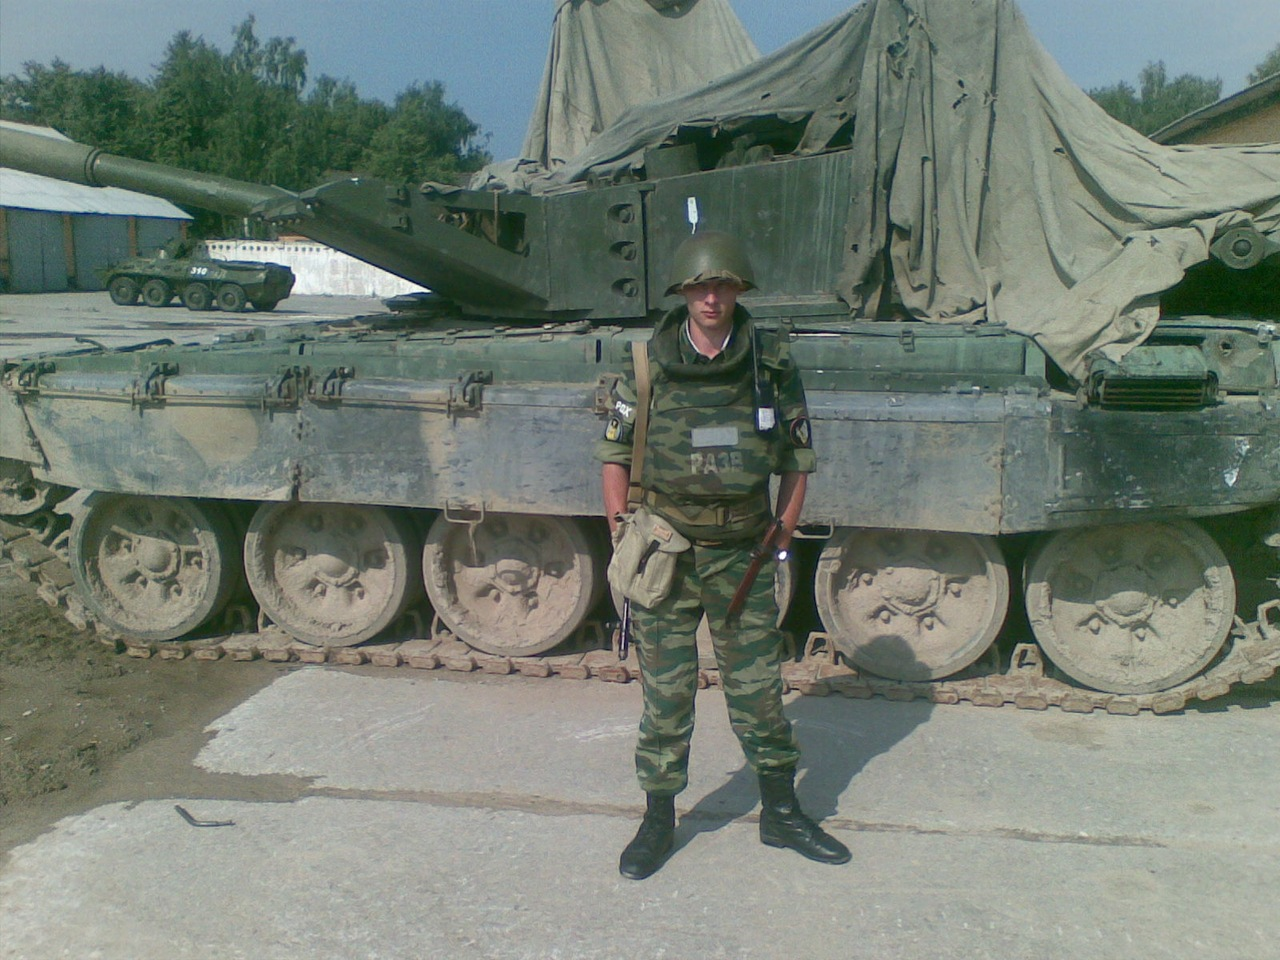 The T-80s future in the Russian Army - Page 12 EuhRXj-XEAIw7B8?format=jpg&name=large